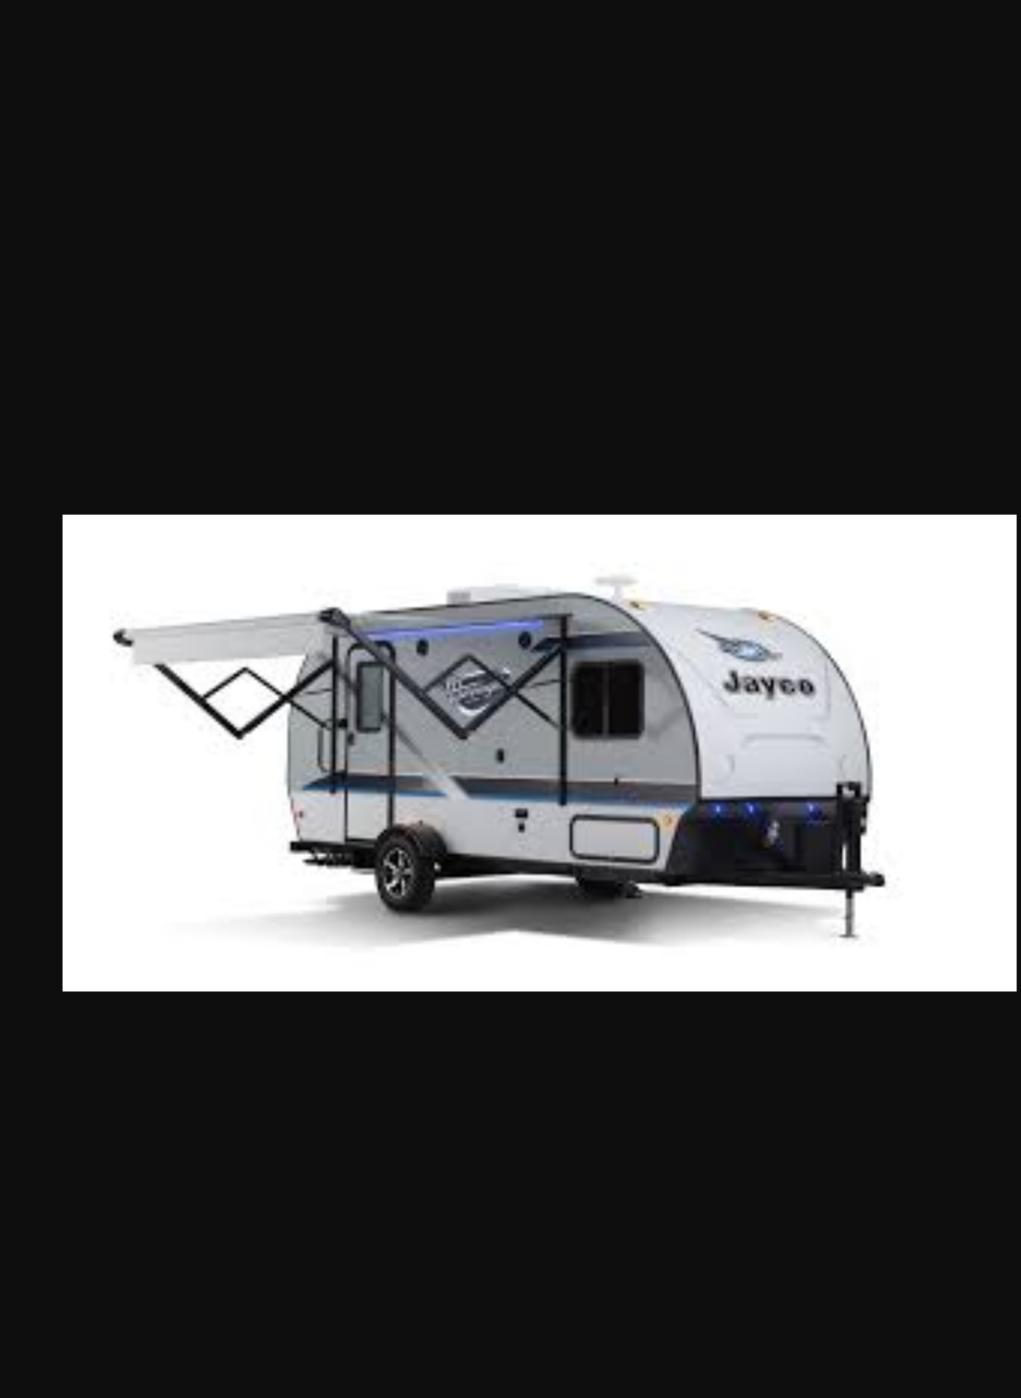 Travel light with all your modern conveniences! . Jayco hummingbird 2019